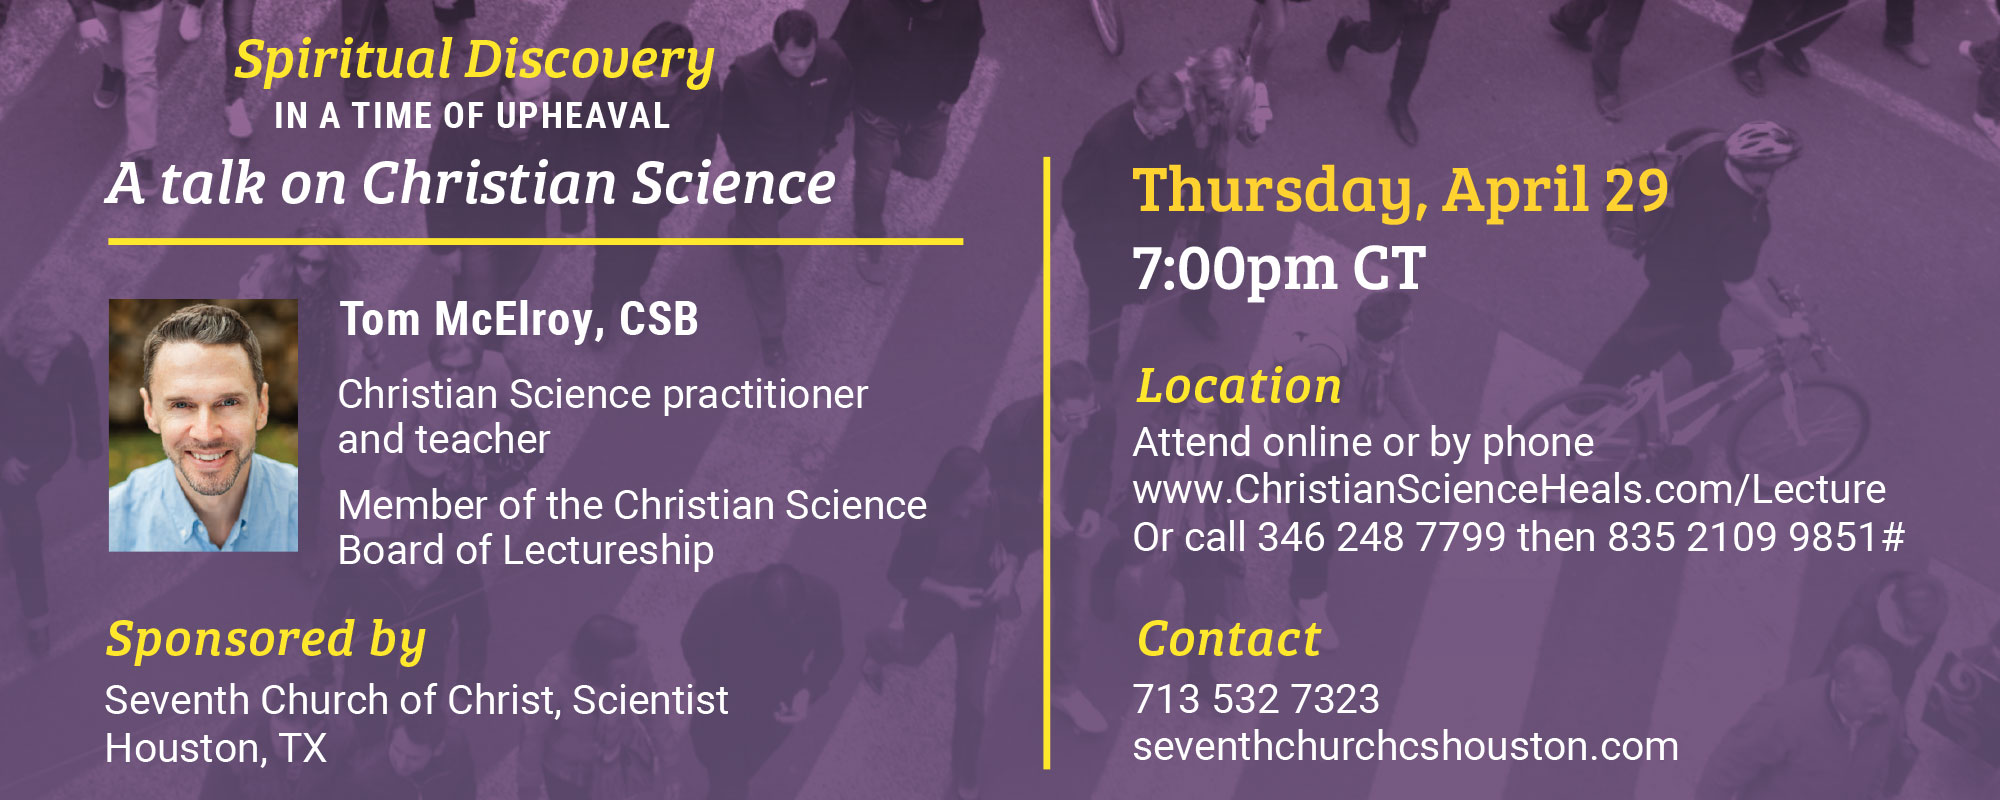 """Join us on Thursday, April 29 at 7:00pm CDT for a live online lecture: """"Spiritual discovery in a time of upheaval"""" by Tom McElroy, CSB"""